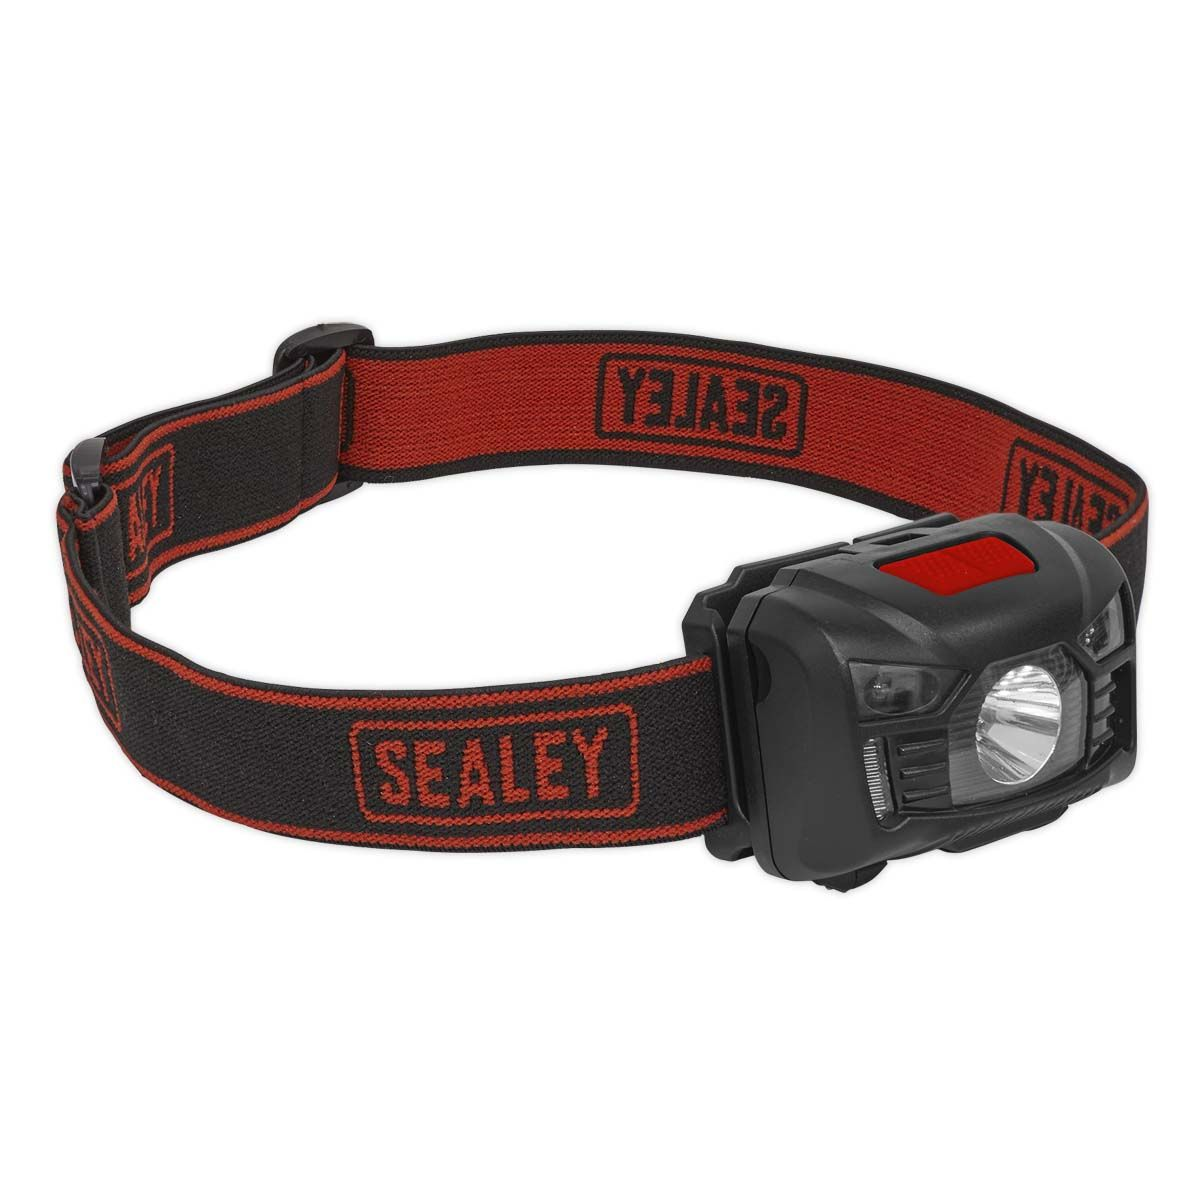 Sealey Rechargeable Head Torch 3W CREE XPE LED Auto Sensor